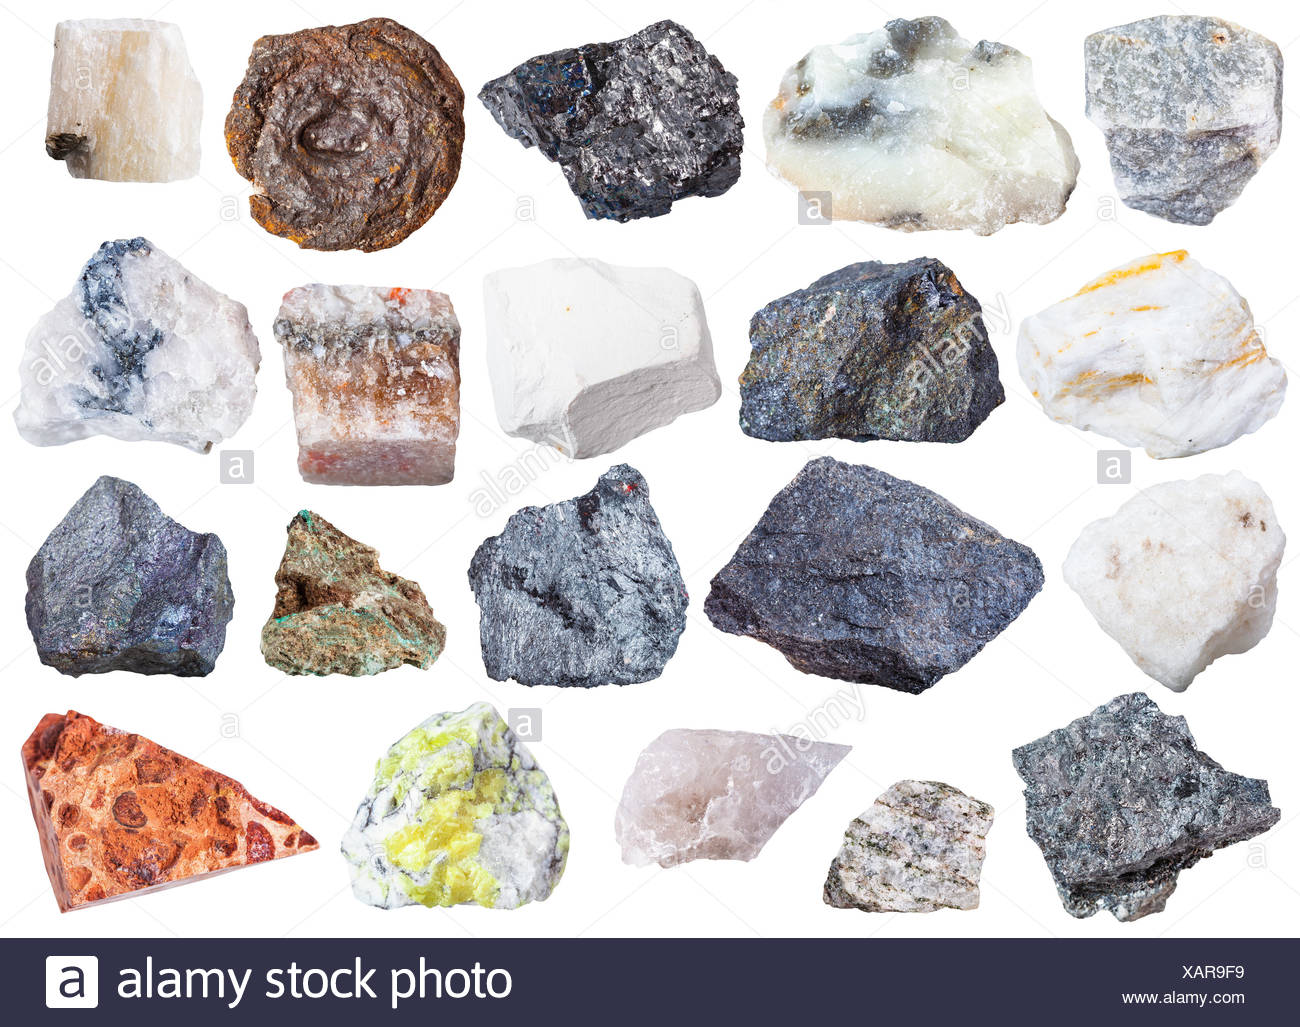 collection of natural mineral specimens - Stock Image